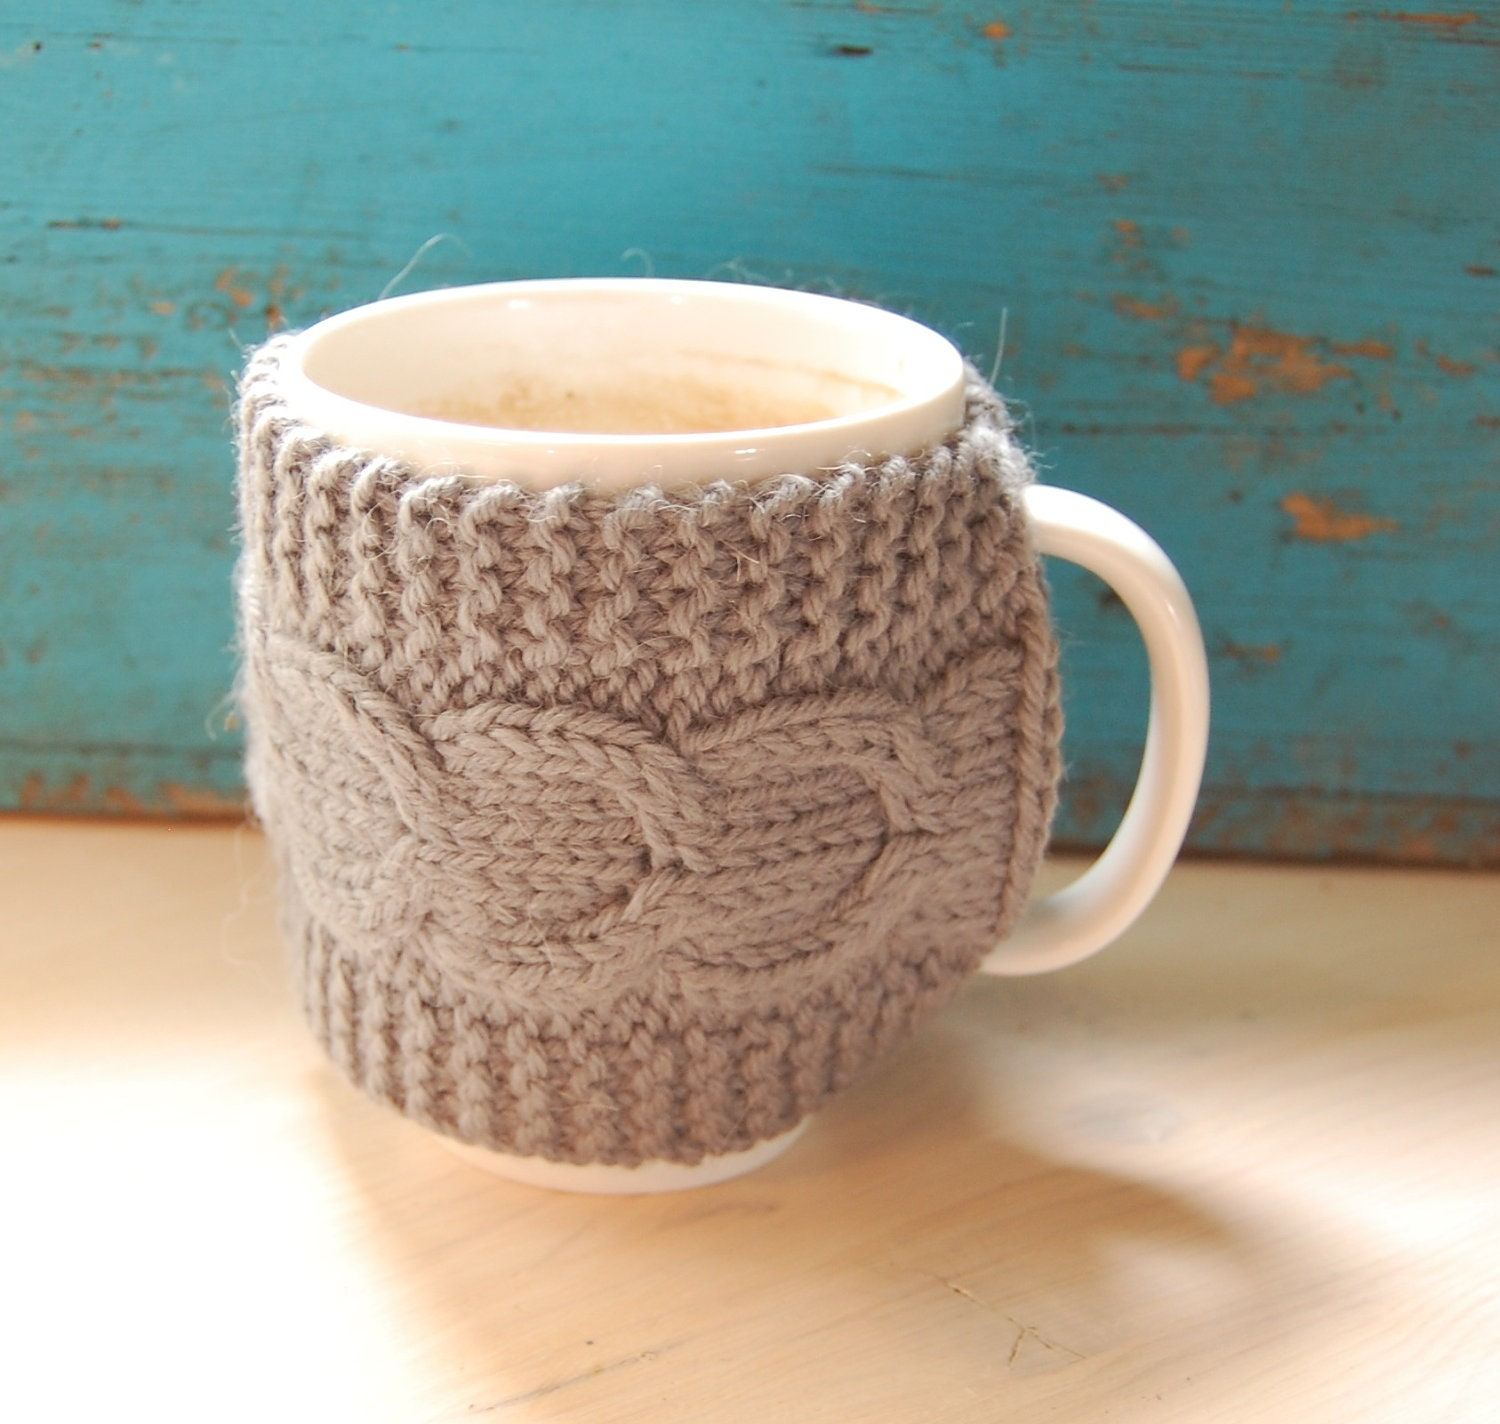 Knit coffee mug cozy with cable pattern, hand knitted, grey